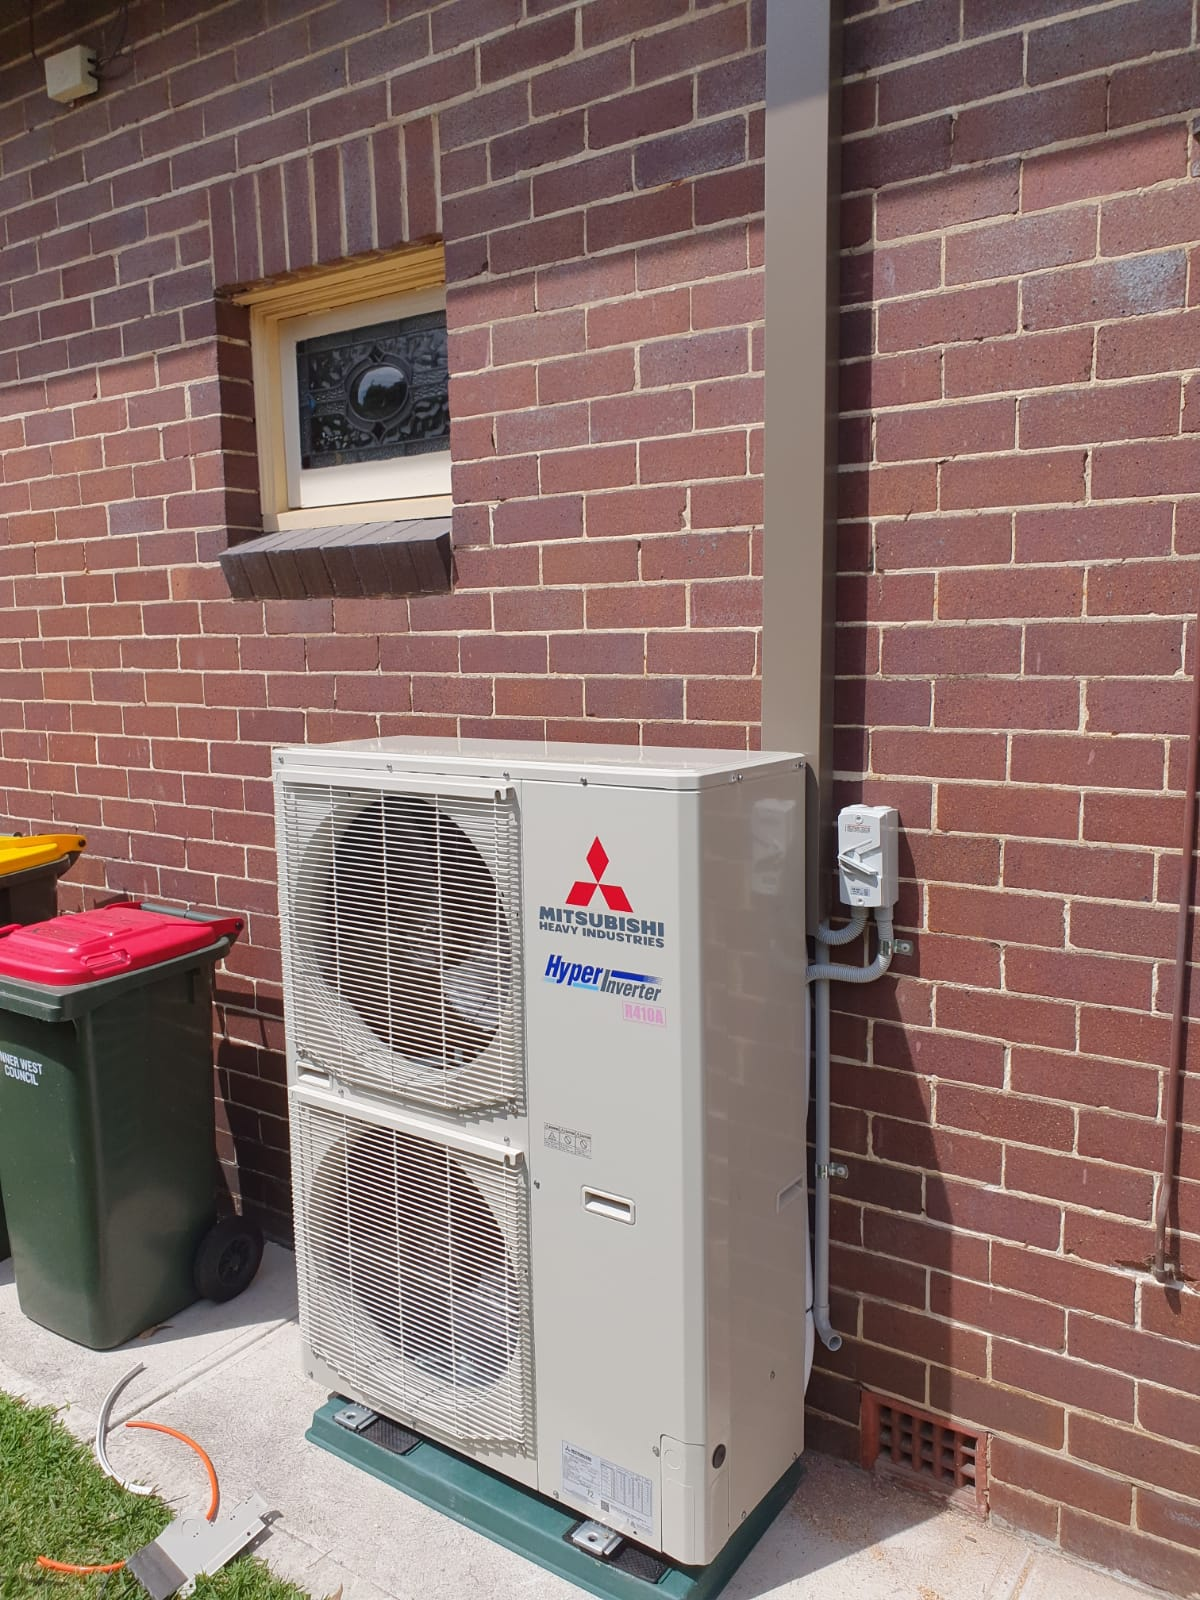 A ducted air conditioning system